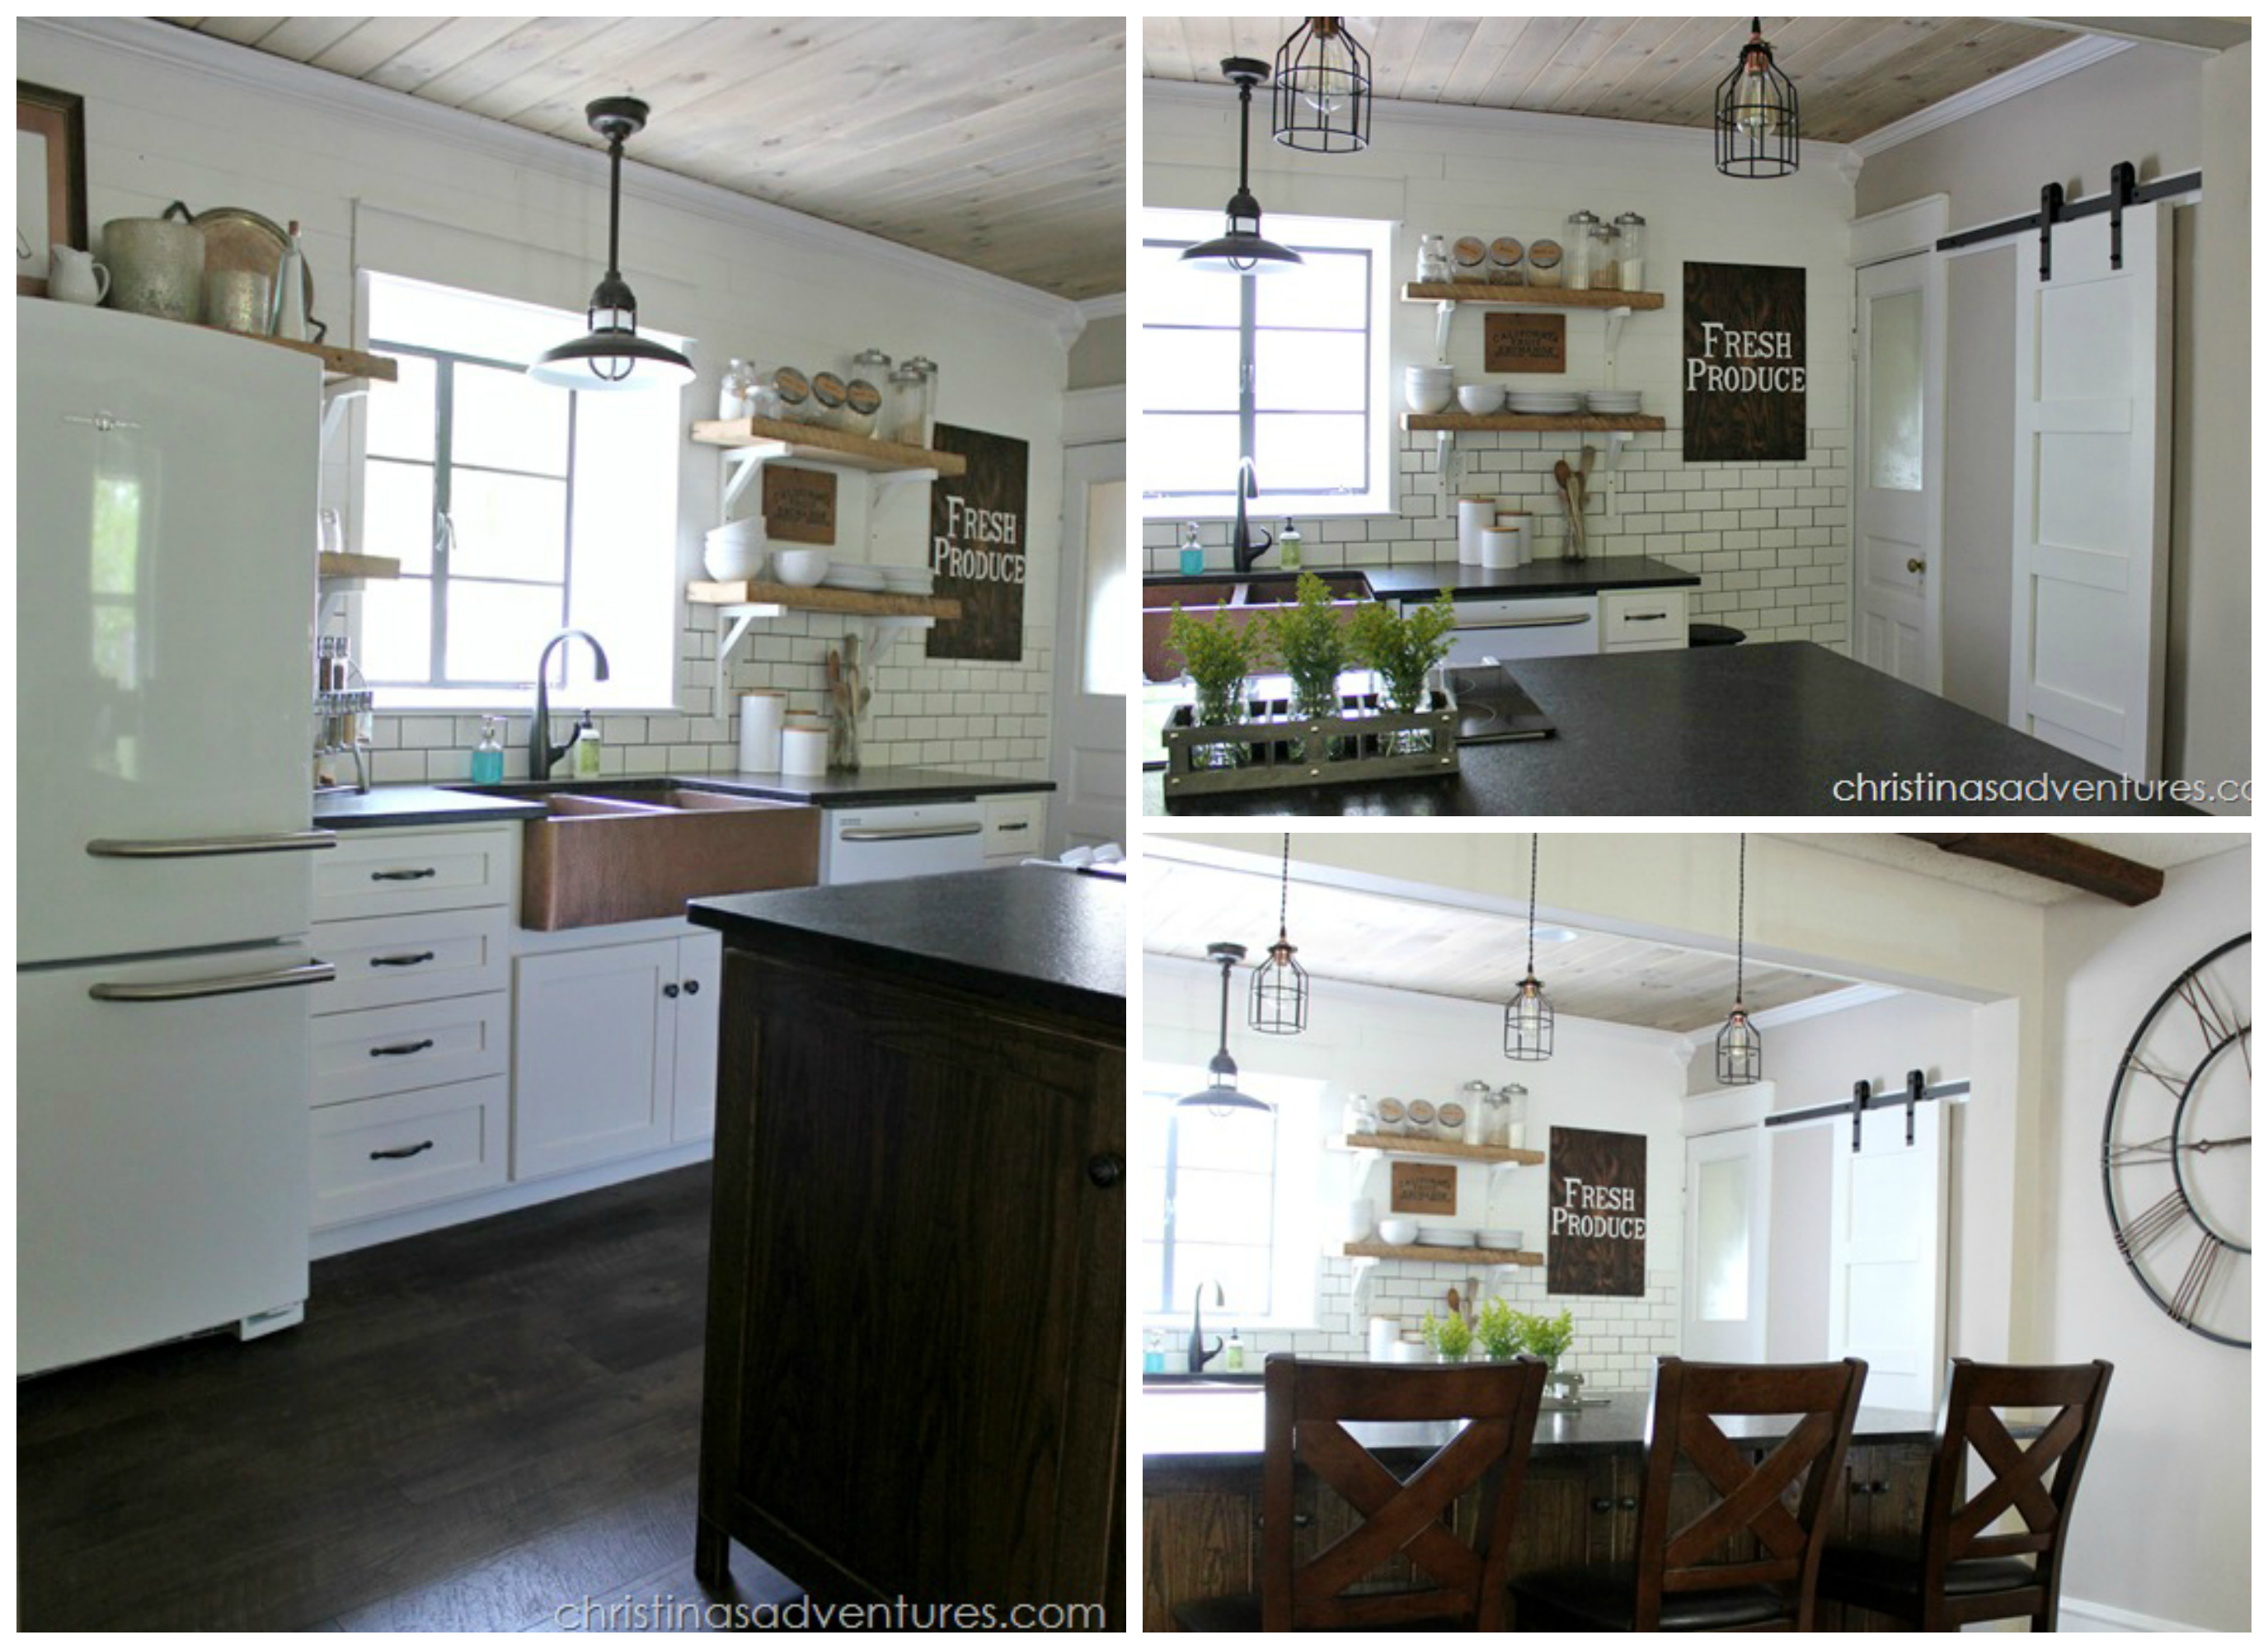 Hgtv fixer upper kitchen makeovers - Rustic Apartment Fixer Upper Top Projects In The Diy Contest